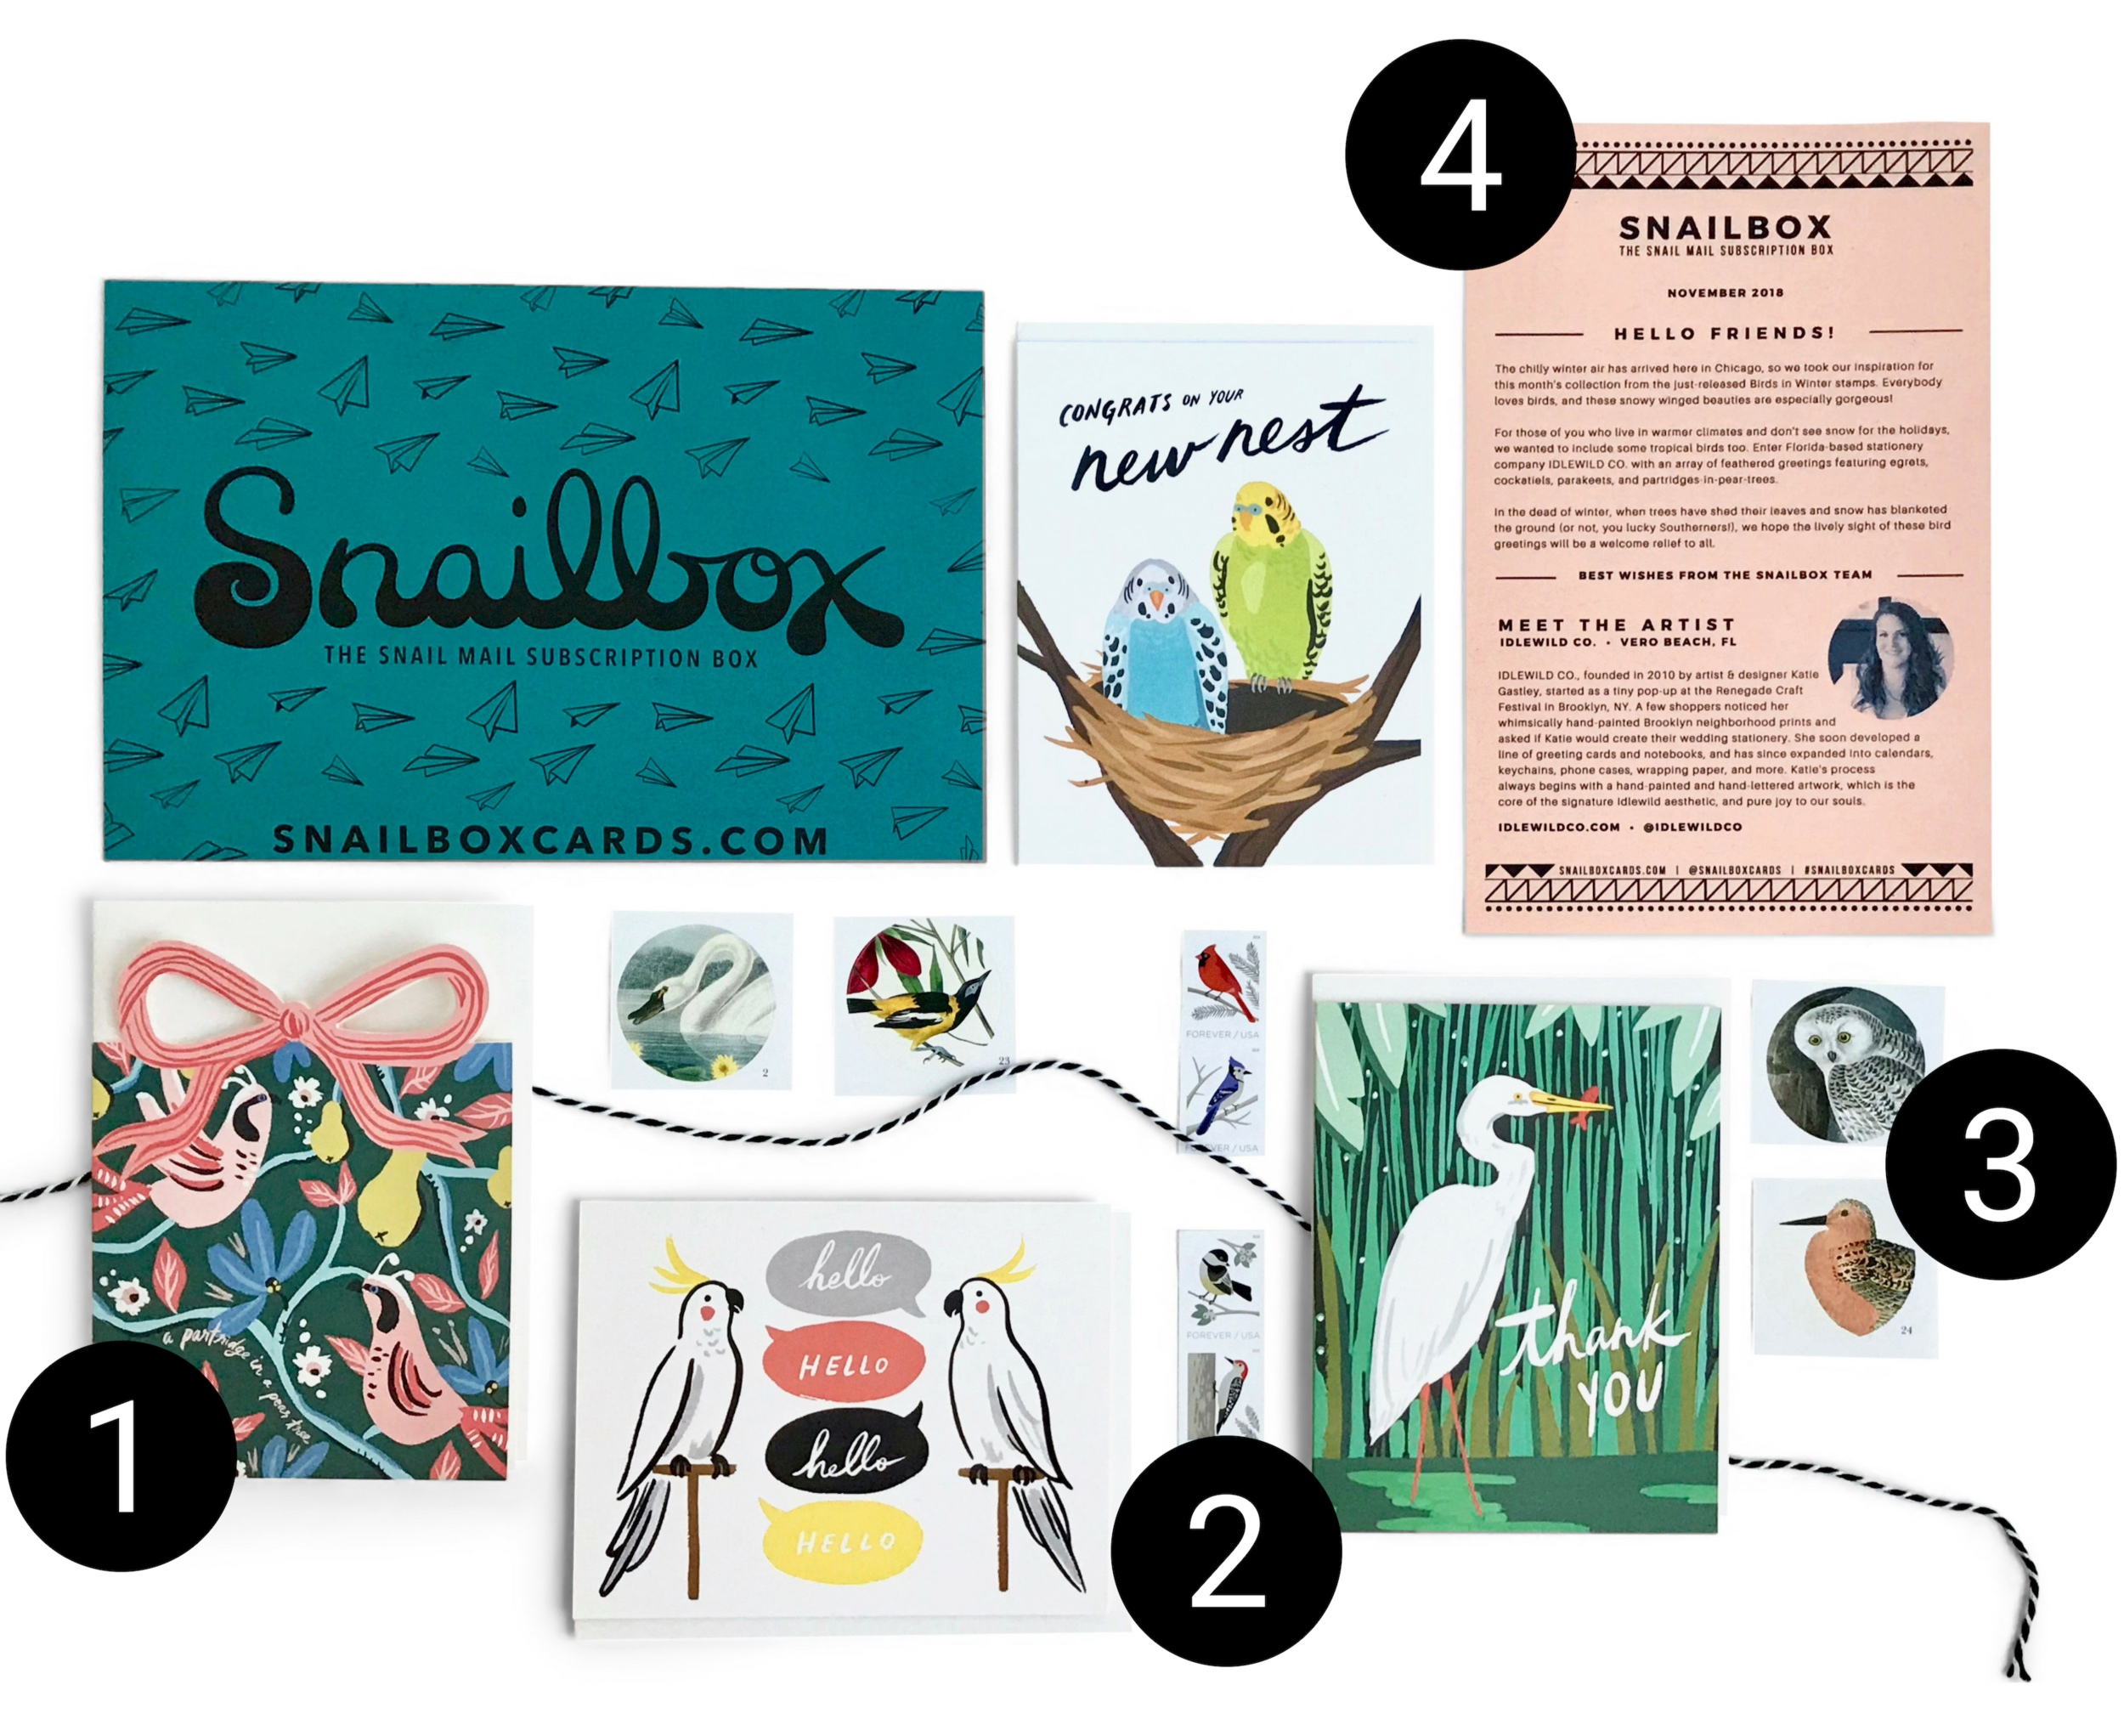 Snailbox+Subscription+Contents